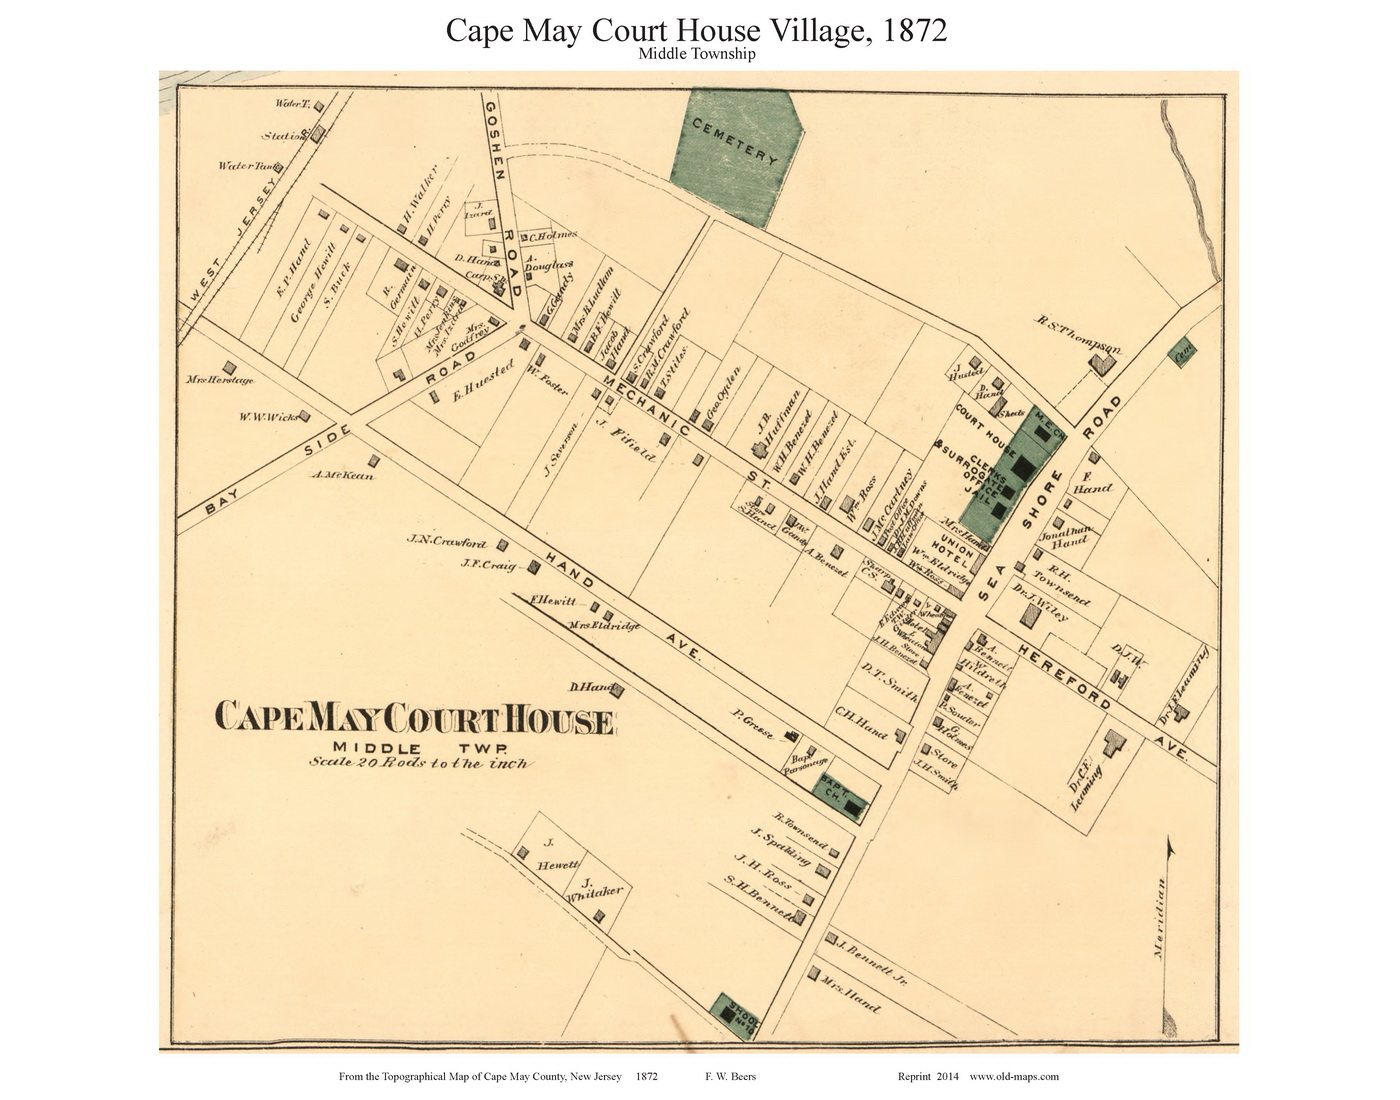 Cape May Court House Village - Middle Township, New Jersey 1872 Old Cape May New Jersey Map on rehoboth beach, jersey shore, long branch, ocean county, cape may lighthouse, town of cape may map, mercer county, leonia new jersey map, cape may beach map, atlantic city, cape may tourist map, cape may county, cape may county herald, town bank cape may map, cape may downtown map, cape may city map, southern new jersey map, stone harbor, sea isle city, delaware bay, south jersey, asbury park, rio grande, belmar new jersey map, cape may street map, cumberland county new jersey map, cape may diamonds, cape may sound, ocean city, lawrence township new jersey map, strathmere new jersey map, allentown new jersey map, cape may national wildlife refuge map, cape may county map, cape may nj,